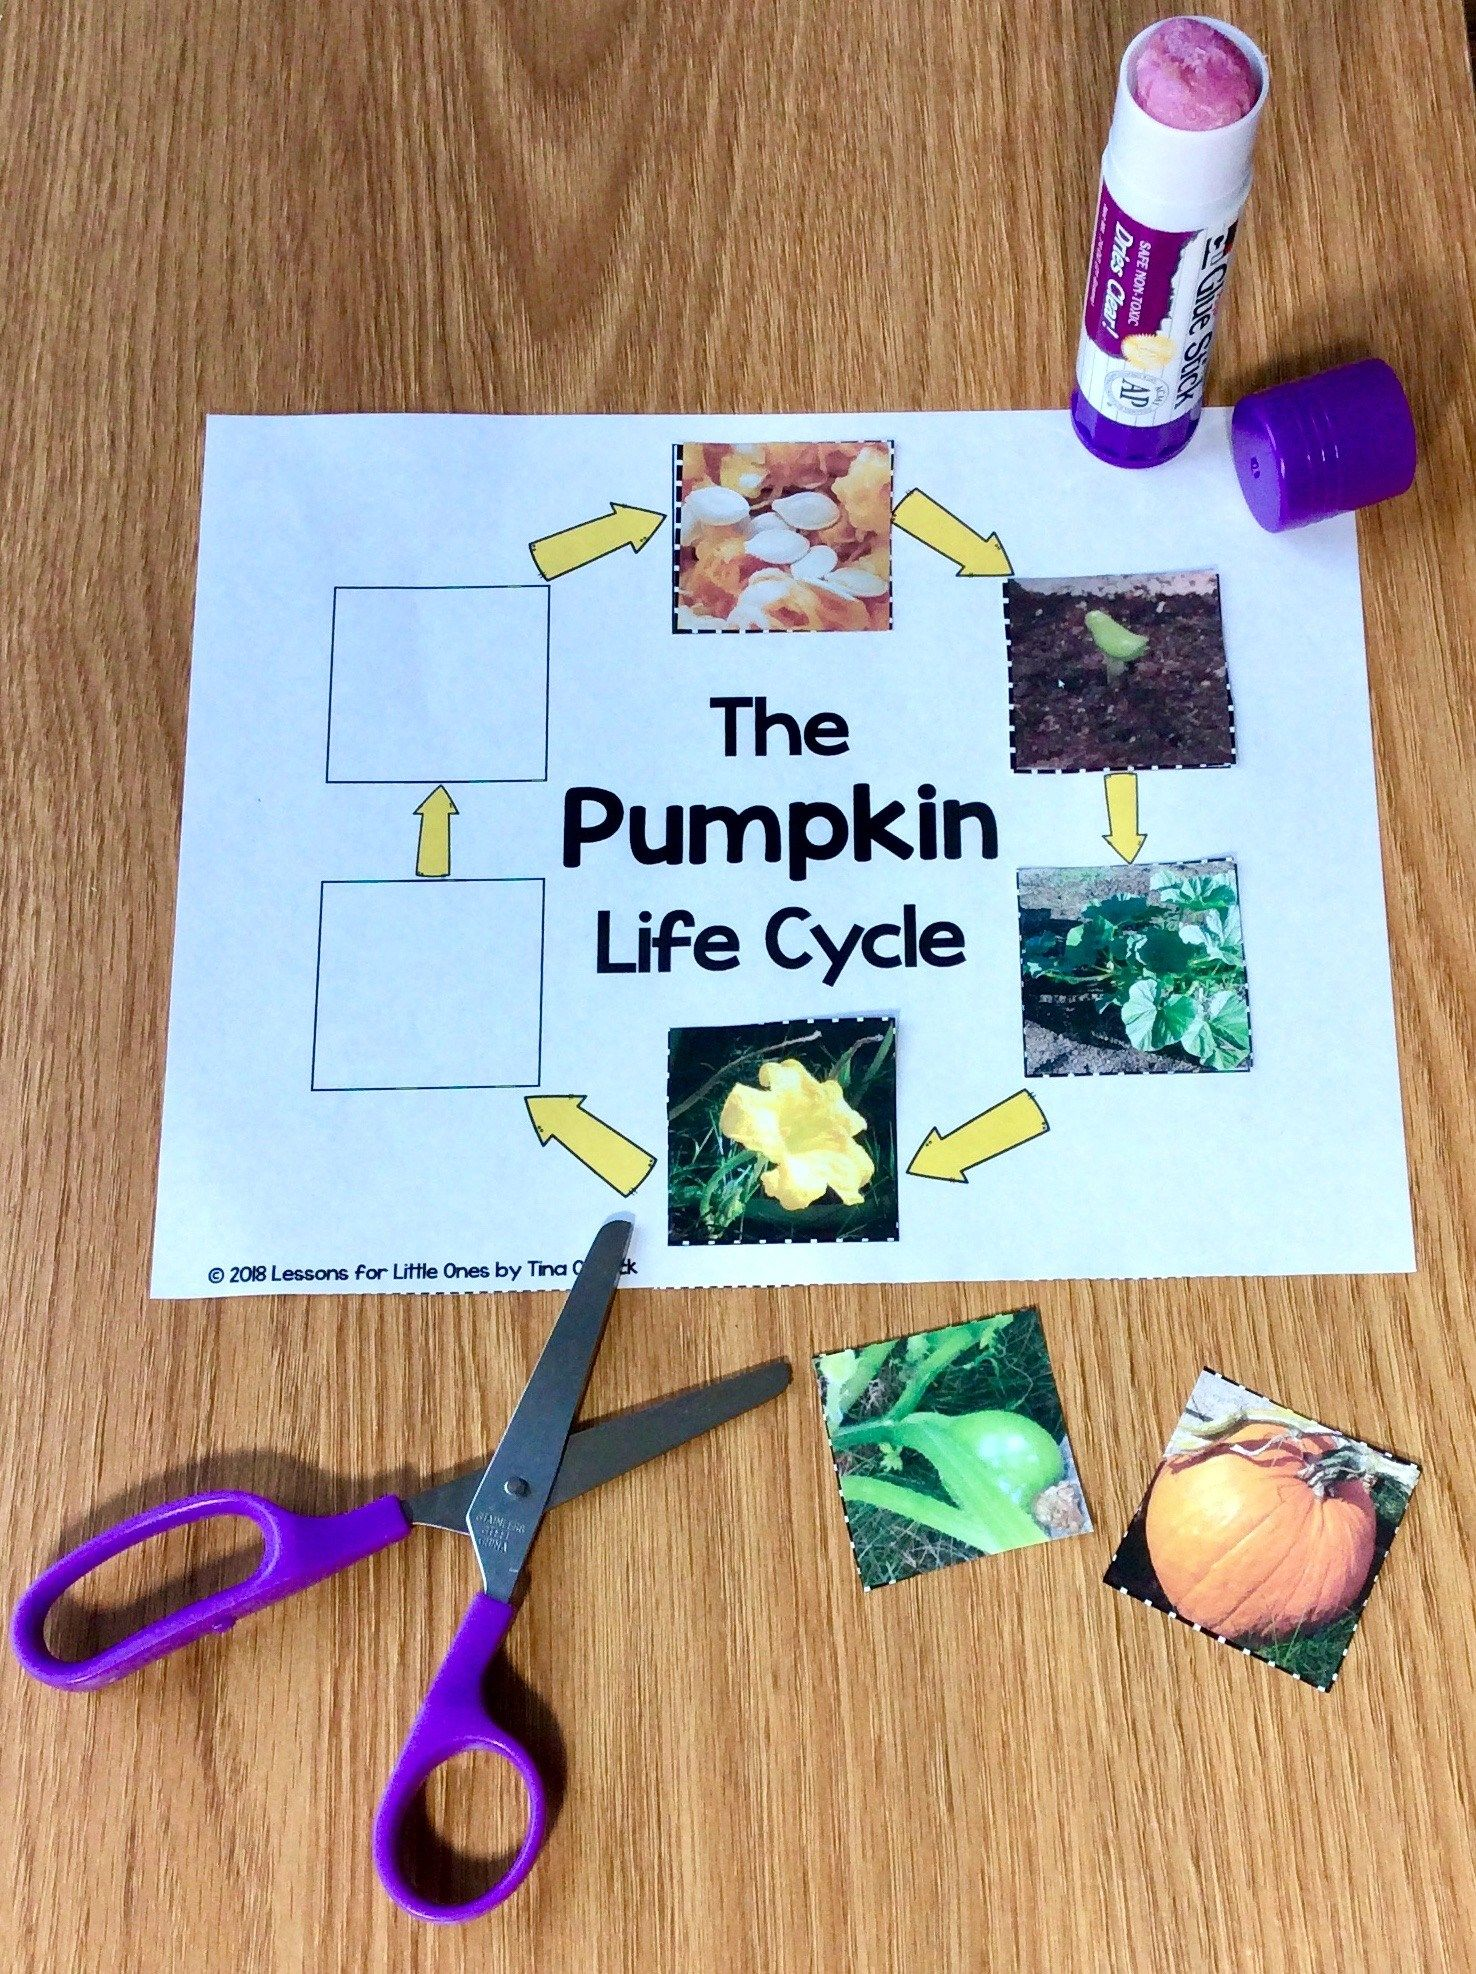 How To Make The Pumpkin Life Cycle Meaningful Amp Fun For